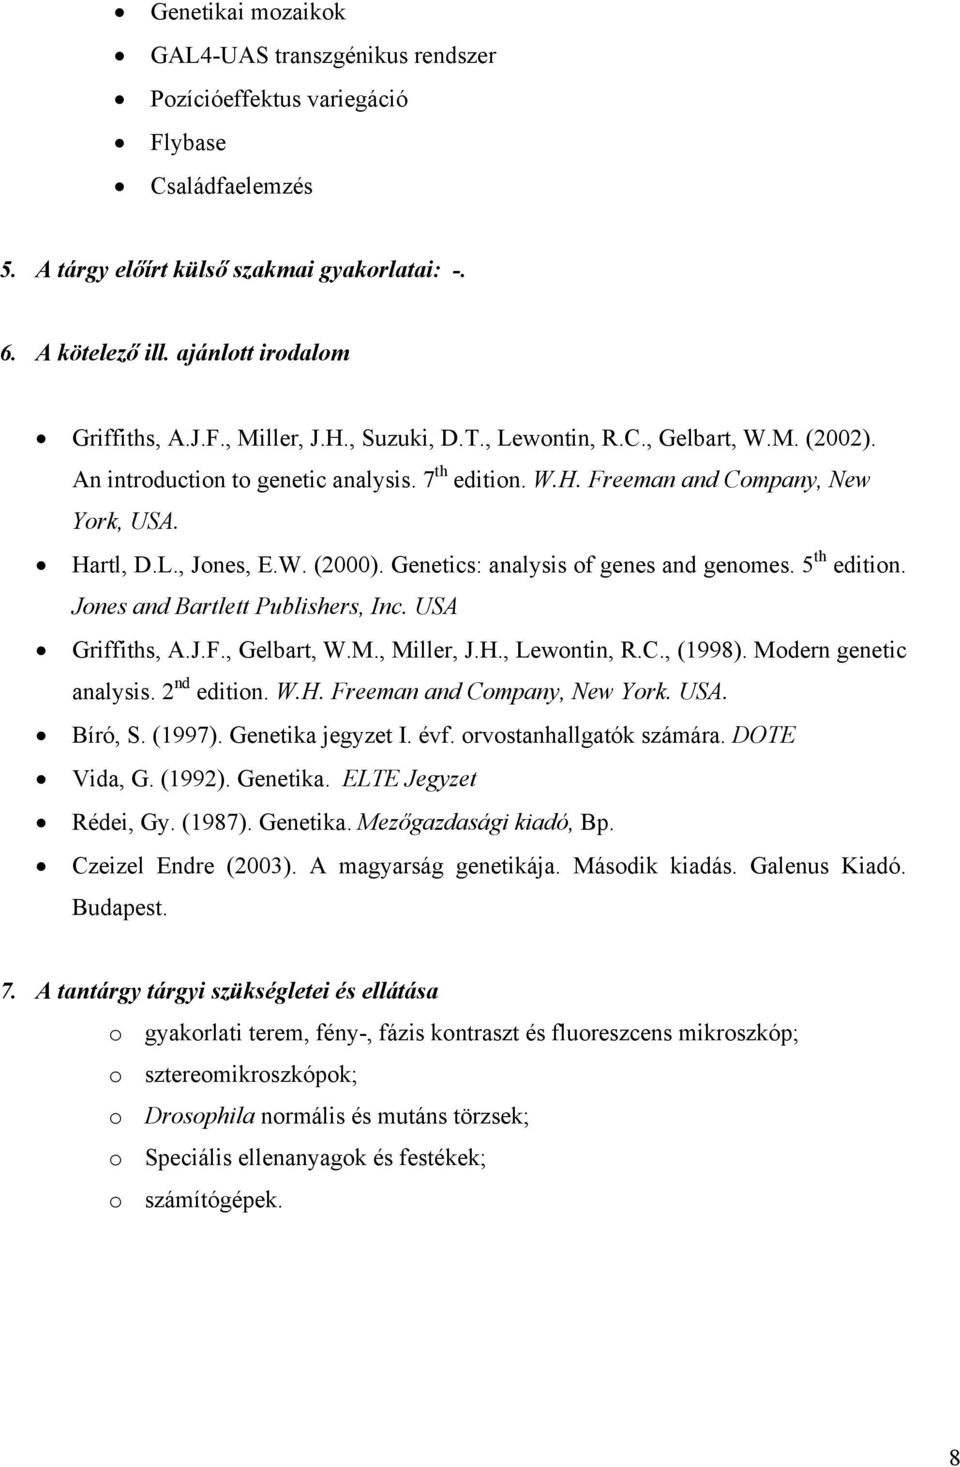 Genetics: analysis of genes and genomes. 5 th edition. Jones and Bartlett Publishers, Inc. USA Griffiths, A.J.F., Gelbart, W.M., Miller, J.H., Lewontin, R.C., (1998). Modern genetic analysis.